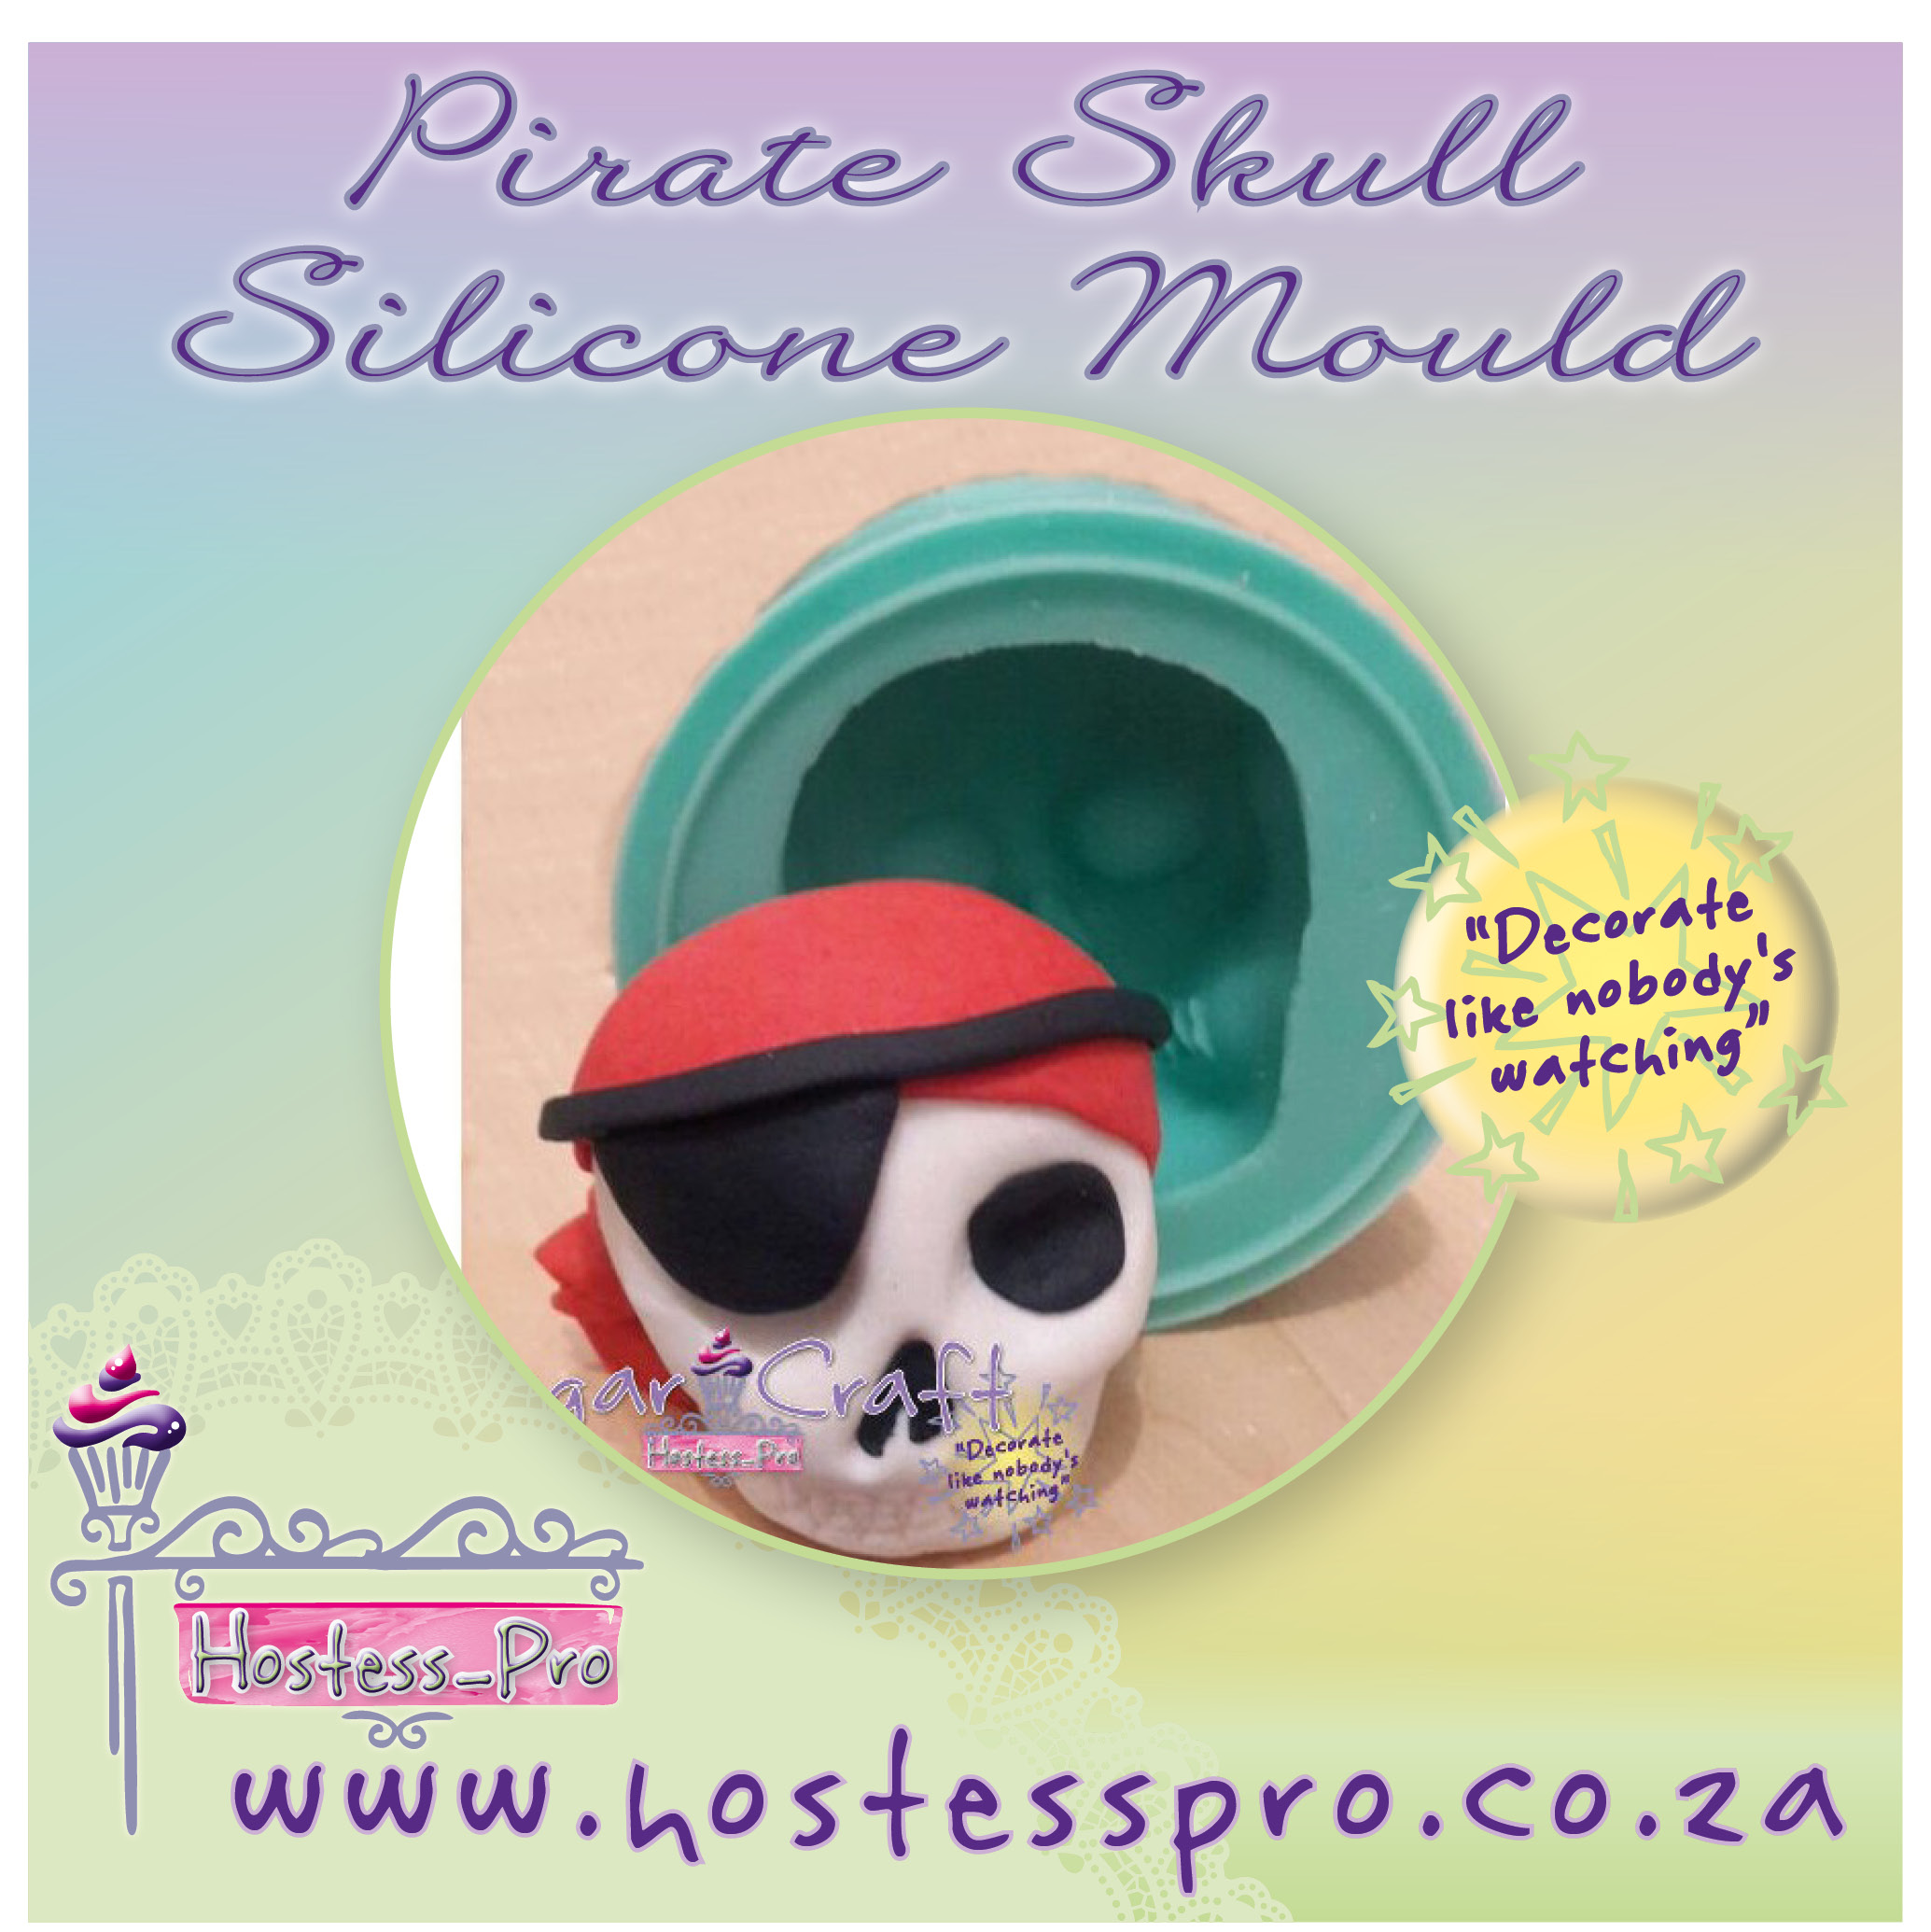 Pirate Skull Silicone Mould